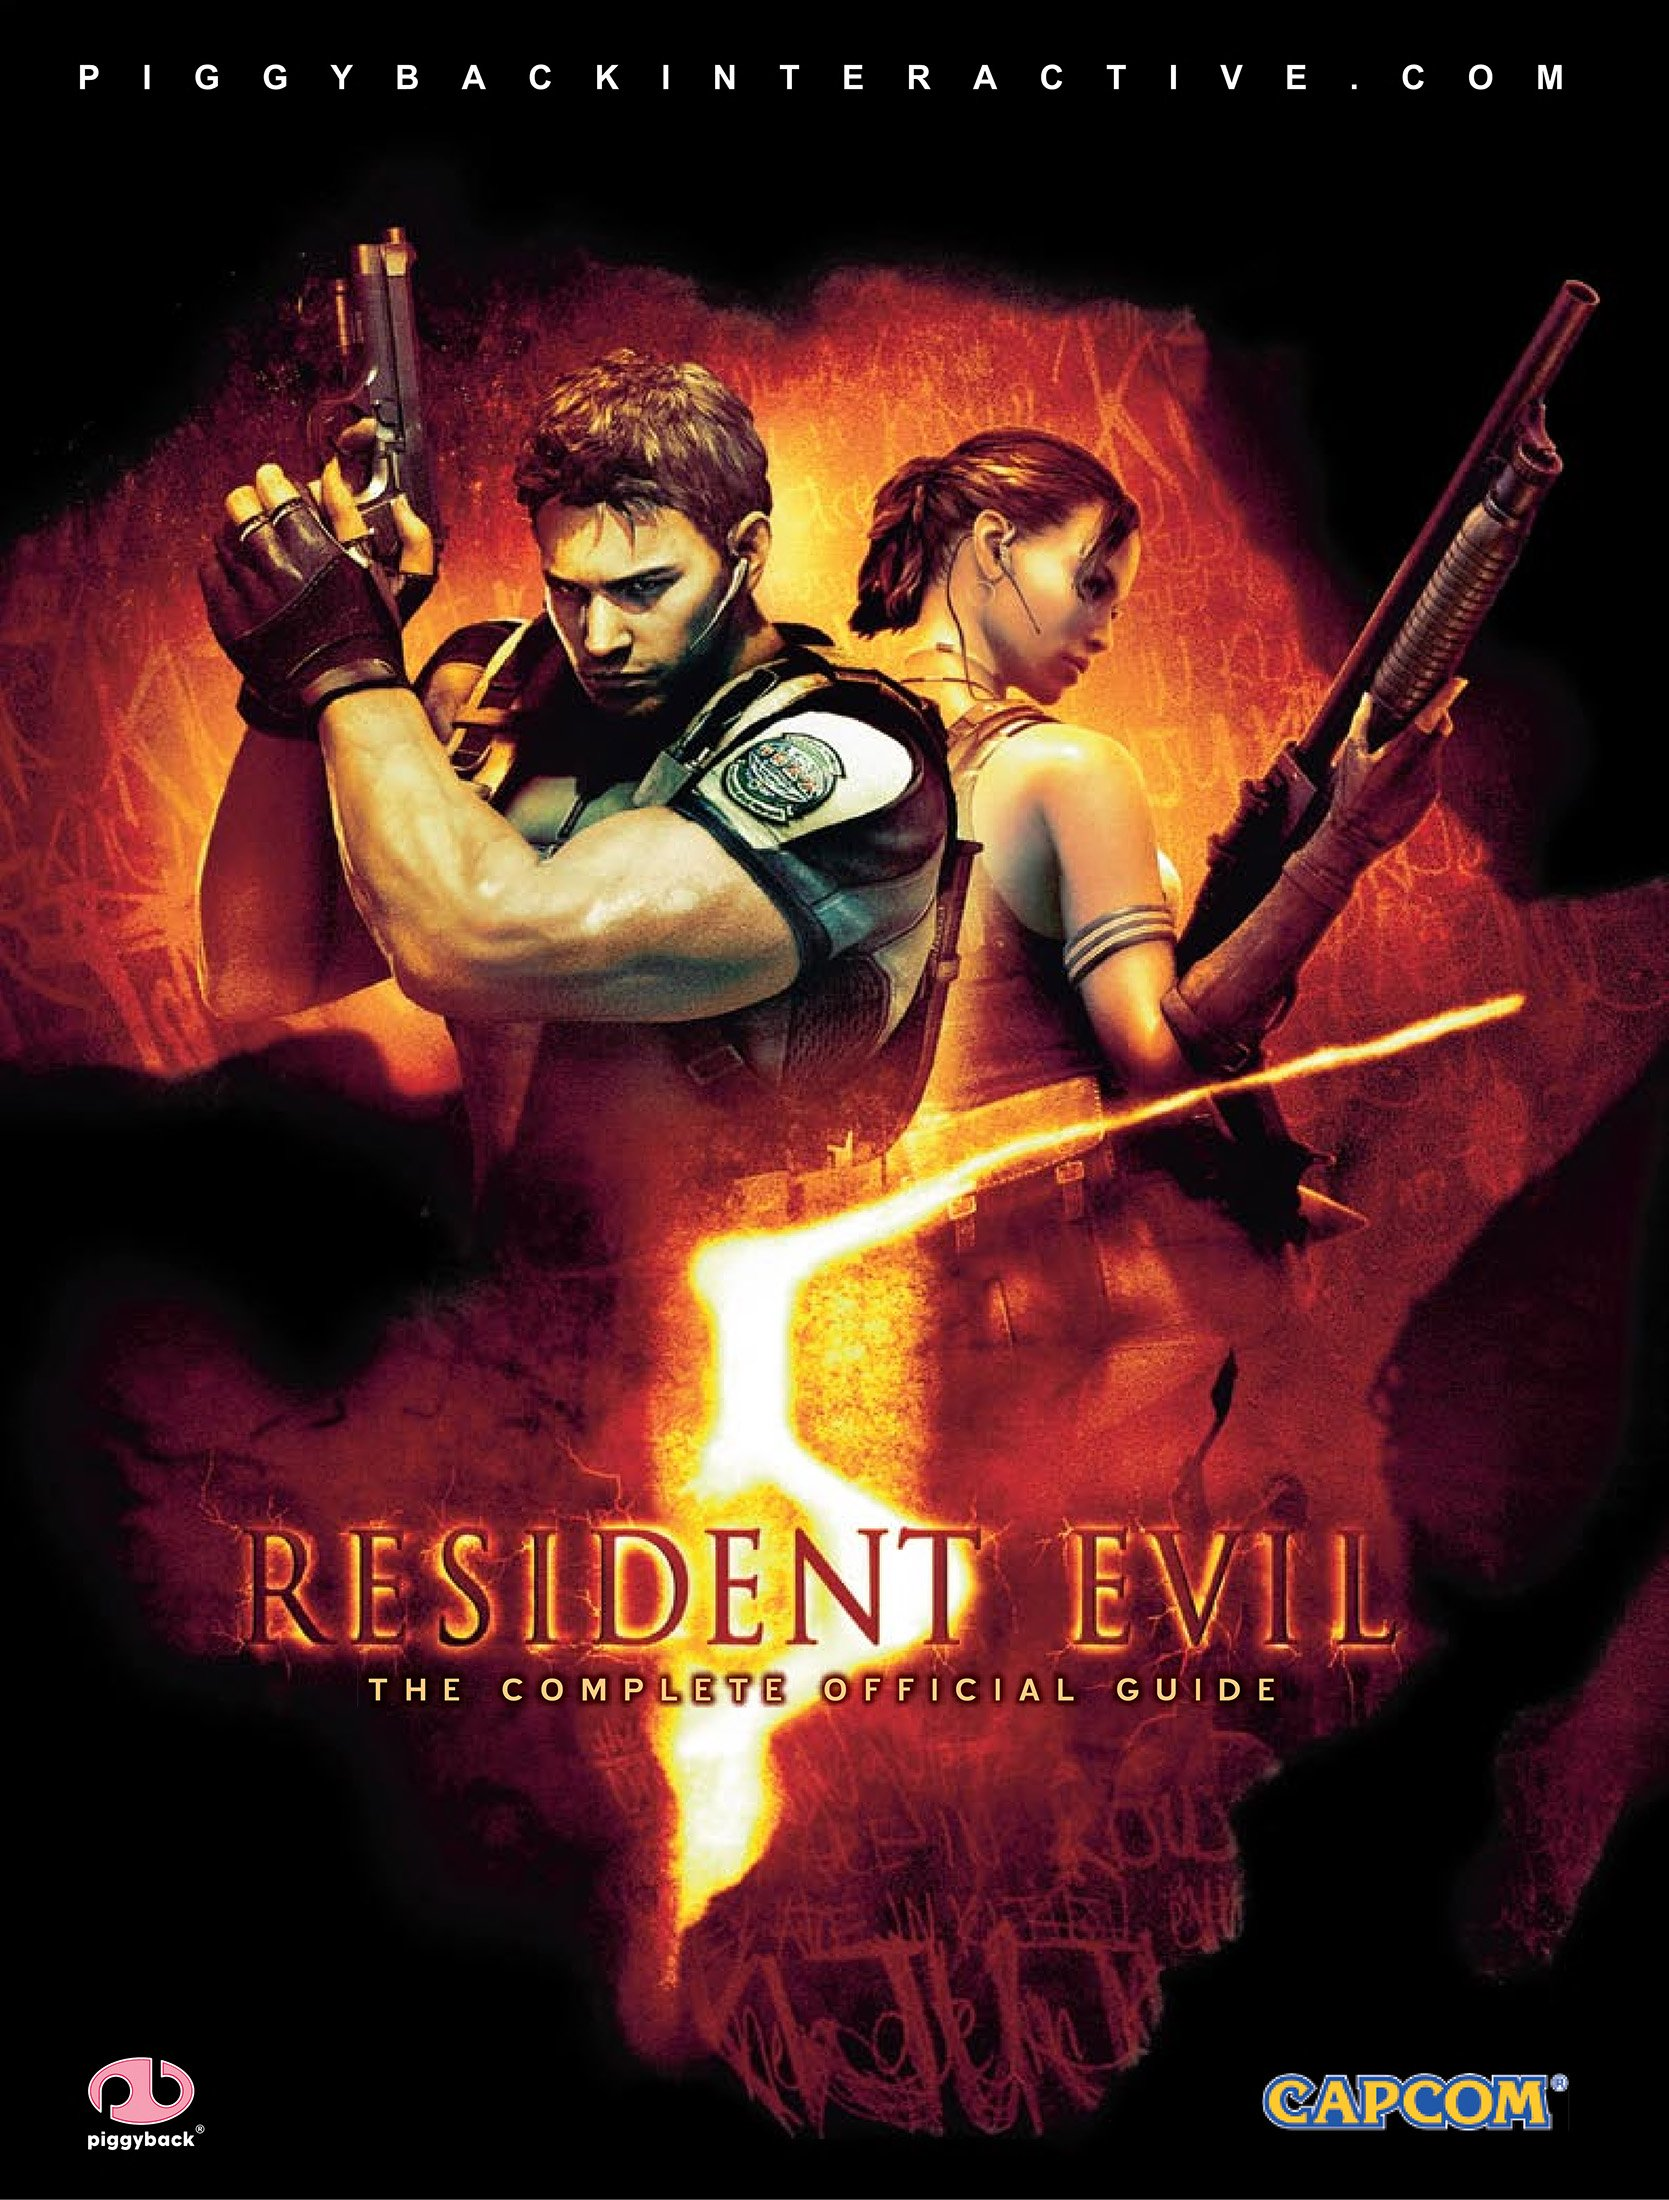 Resident Evil 5 Complete Official Guide